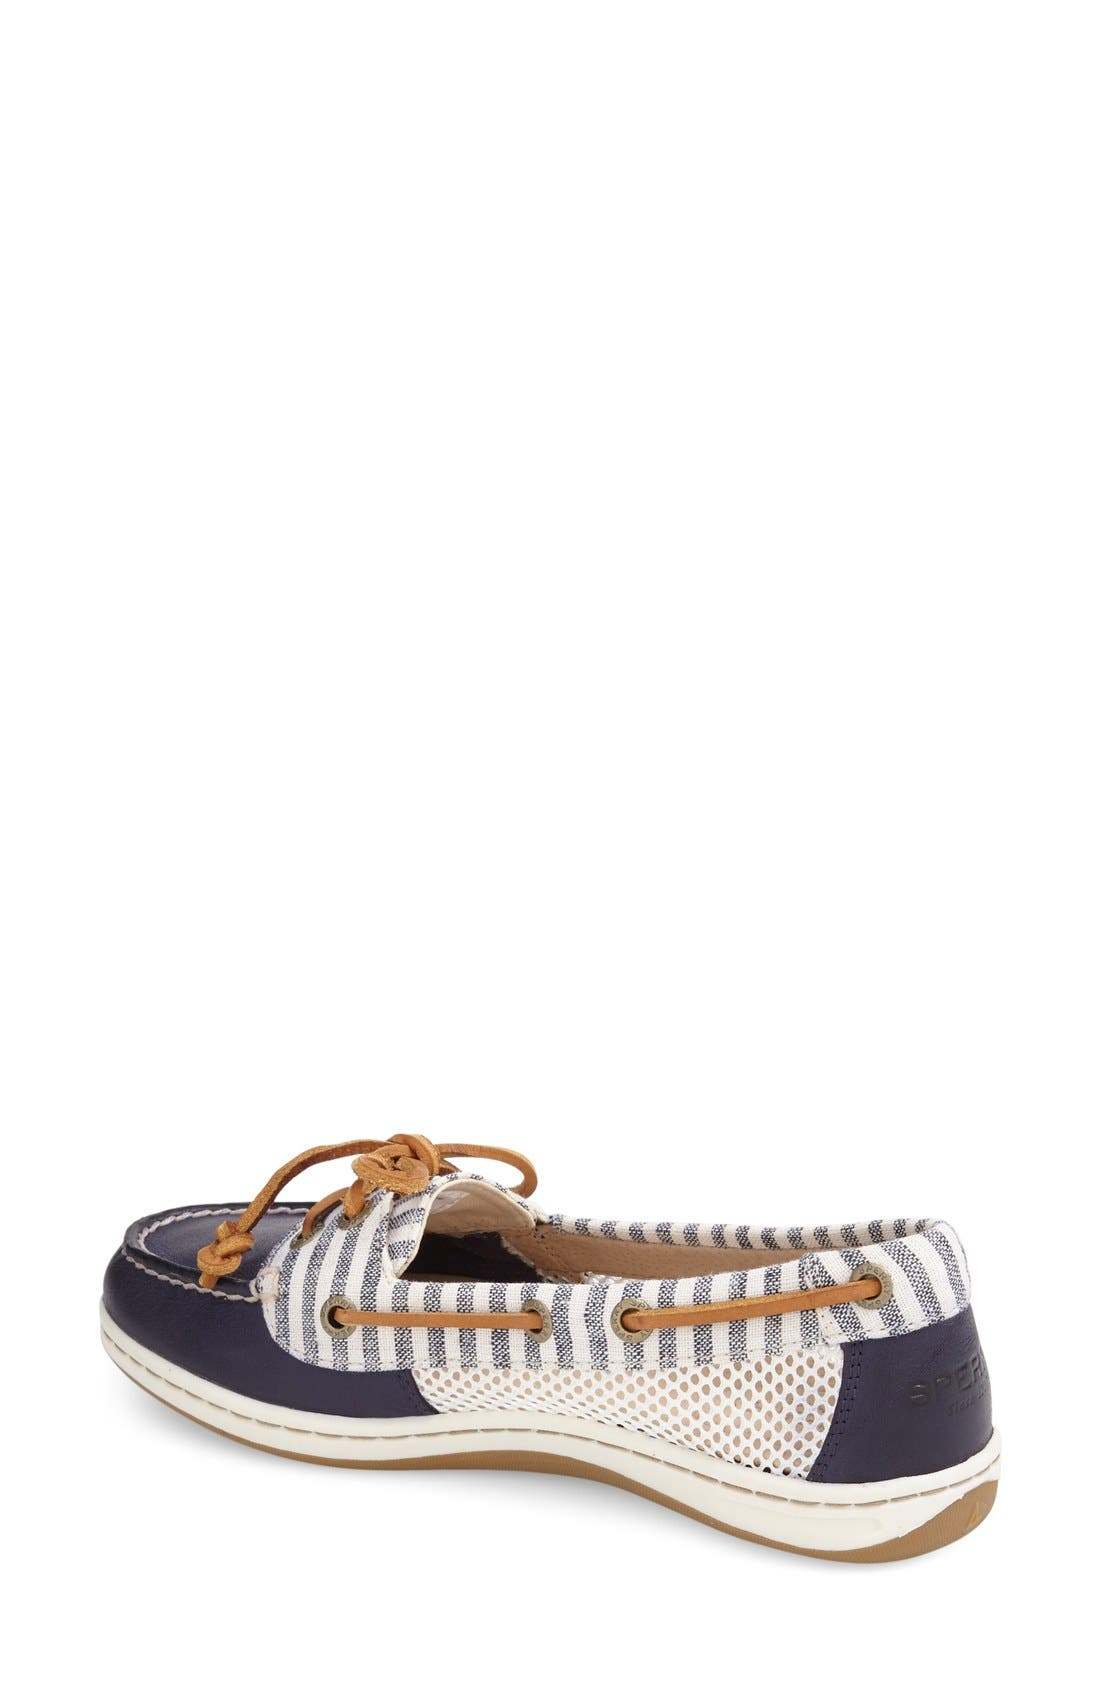 'Firefish' Boat Shoe,                             Alternate thumbnail 20, color,